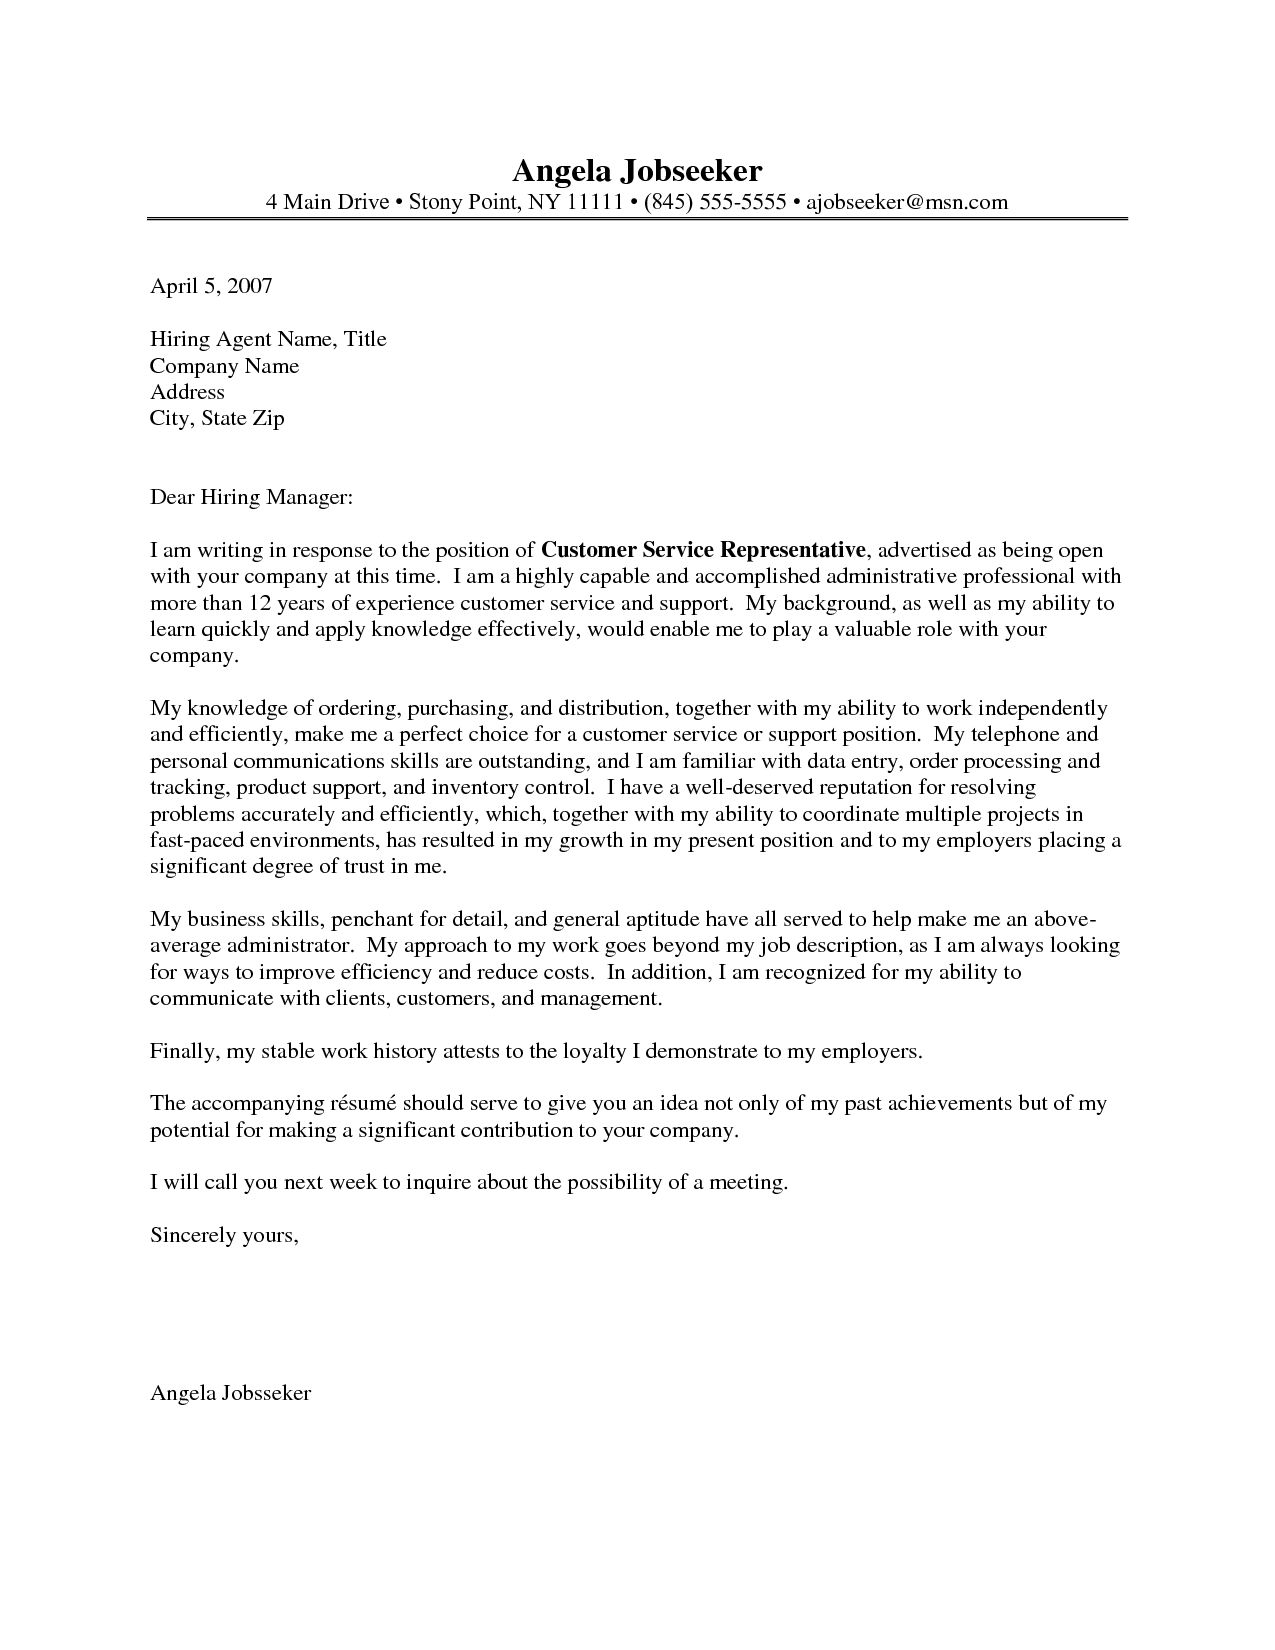 23 Customer Service Cover Letter Examples Customer Service